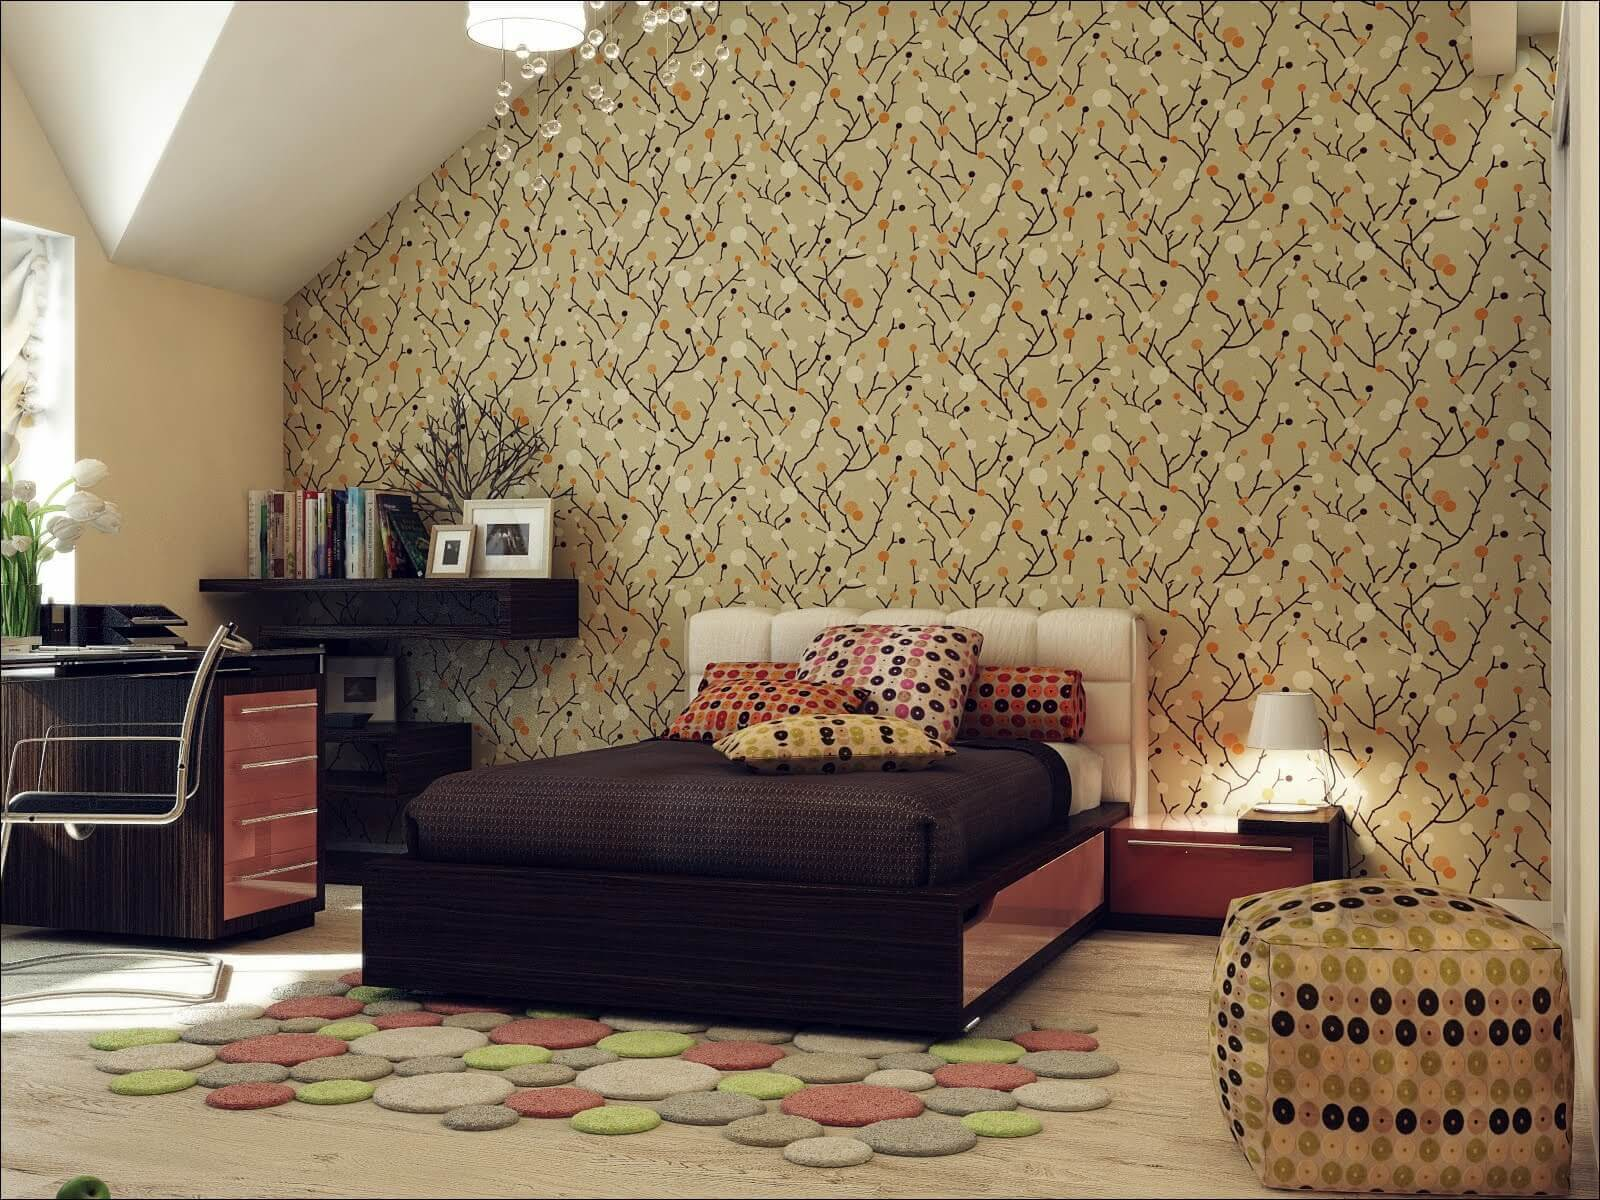 Most Widespread Types of Wallpaper. Common widespread paper type